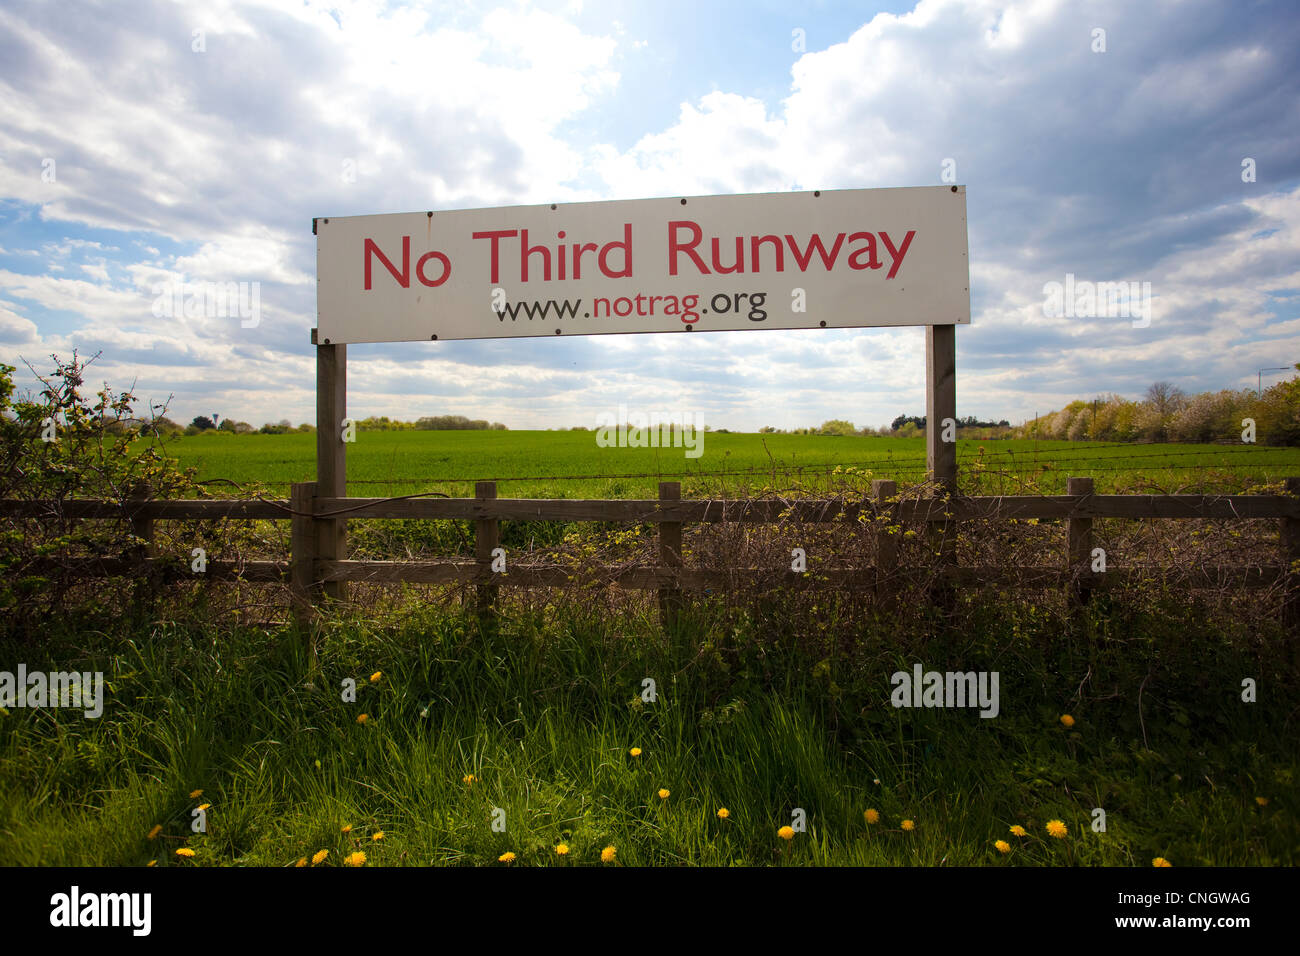 'No Third Runway' sign on Sipsen Road,  location for for the third runway at Heathrow Airport. - Stock Image